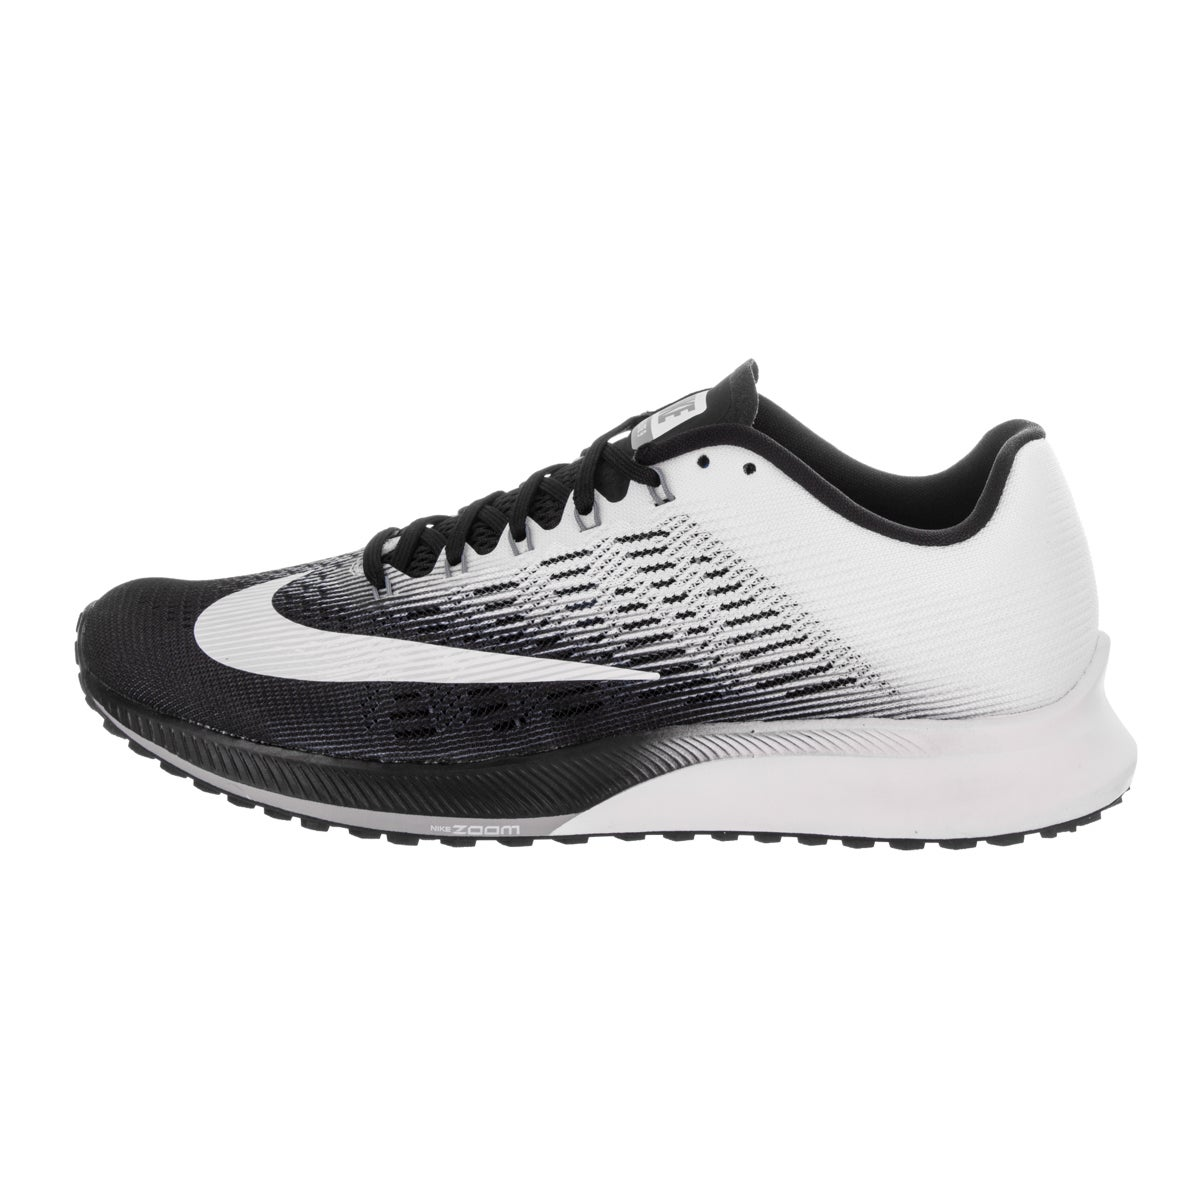 the best attitude 7a050 0d1d4 Shop Nike Womens Air Zoom Elite 9 BlackWhiteGrey Breathable Running Shoe  - Free Shipping Today - Overstock.com - 14823108 - 5